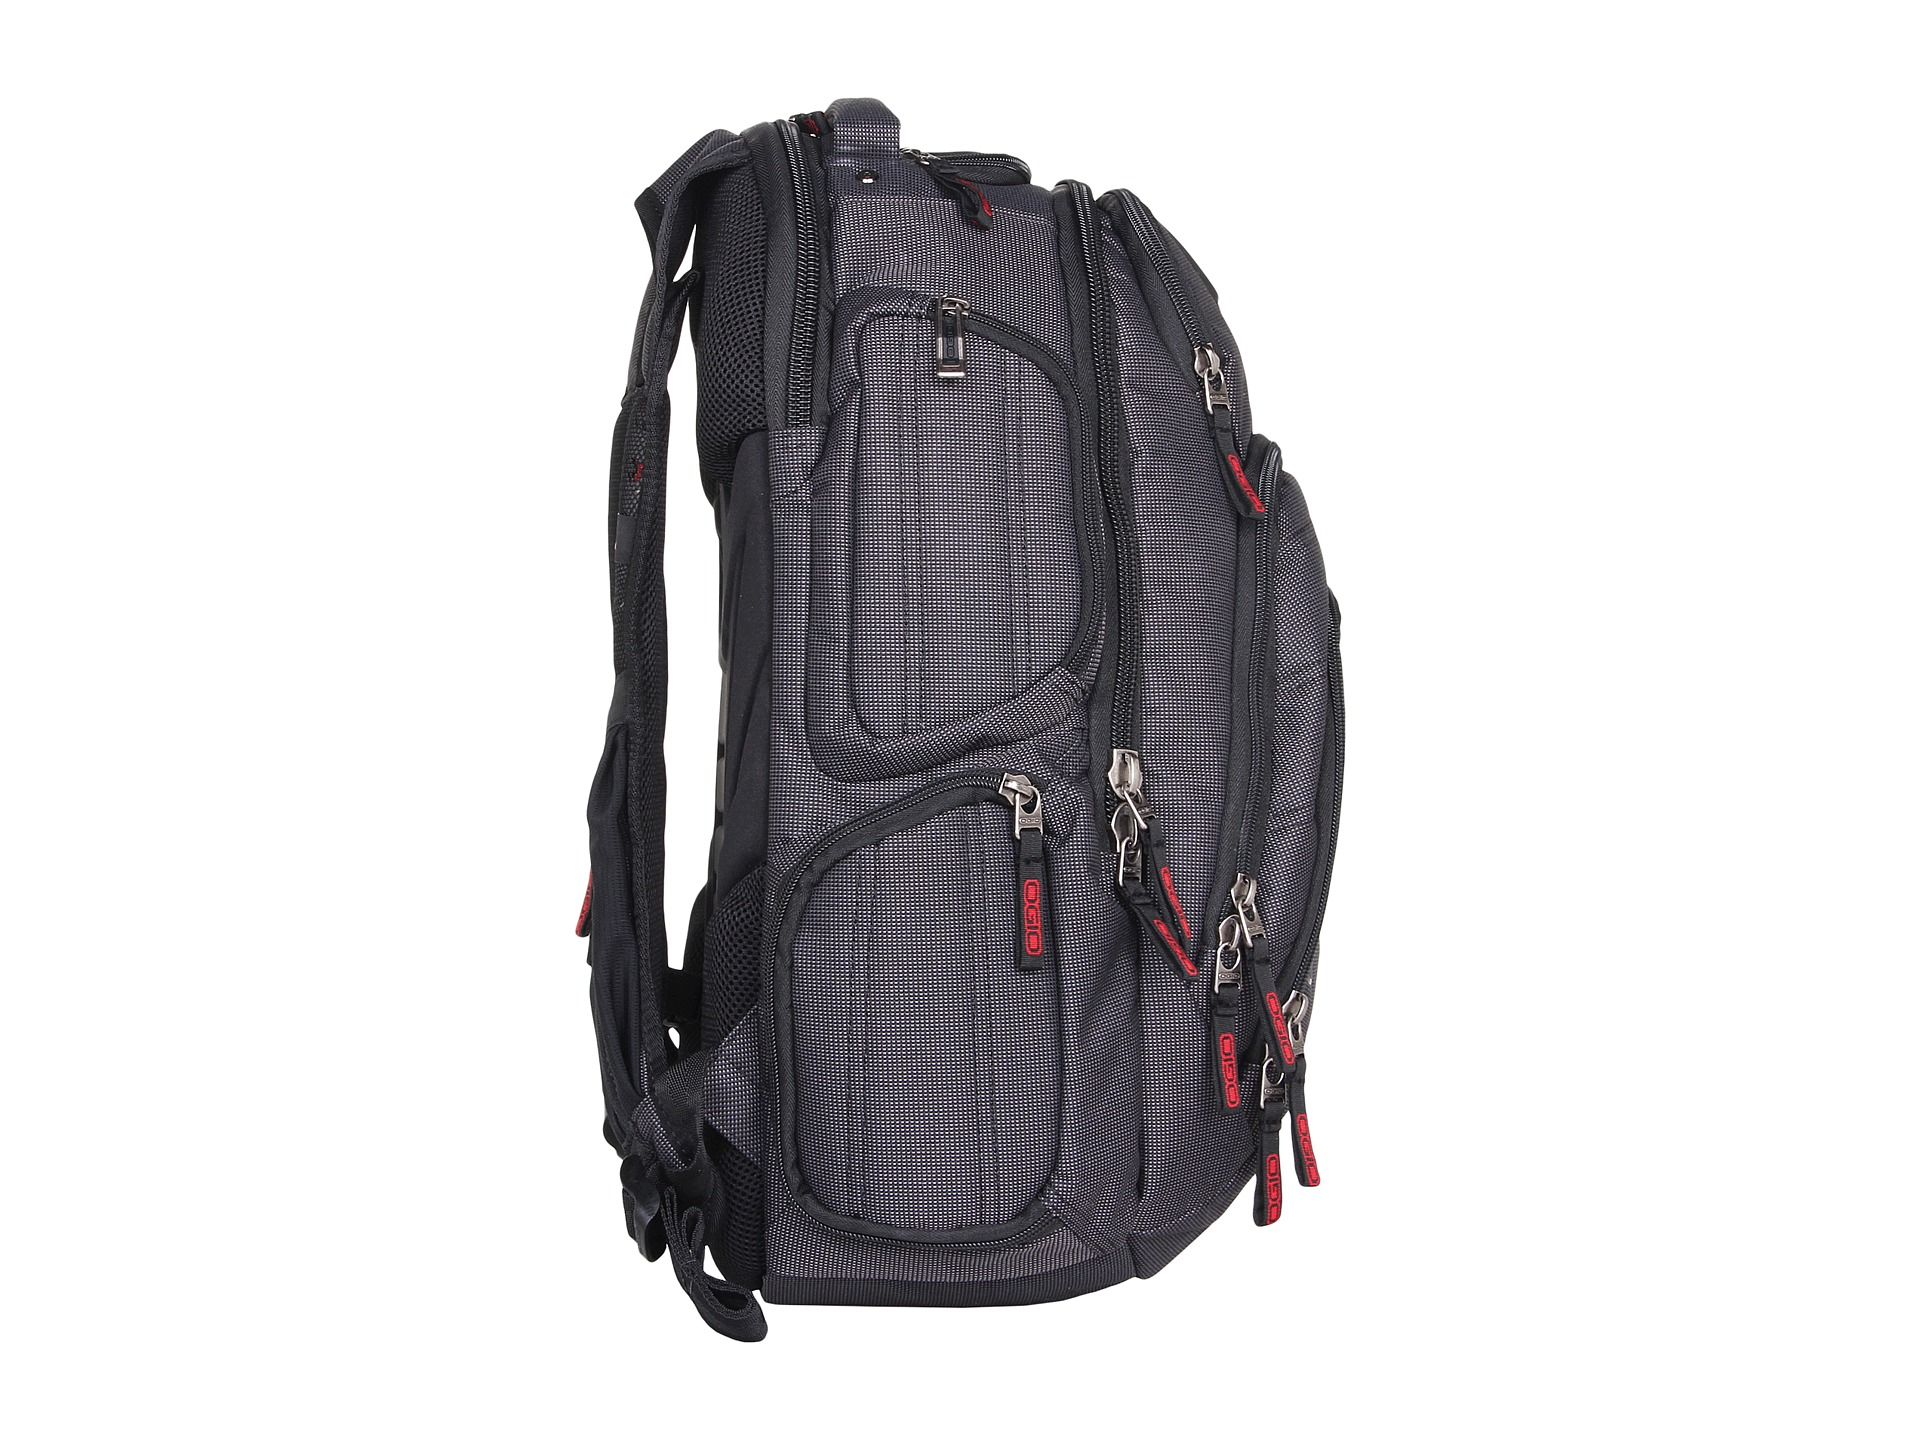 OGIO Renegade RSS Pack - Zappos.com Free Shipping BOTH Ways